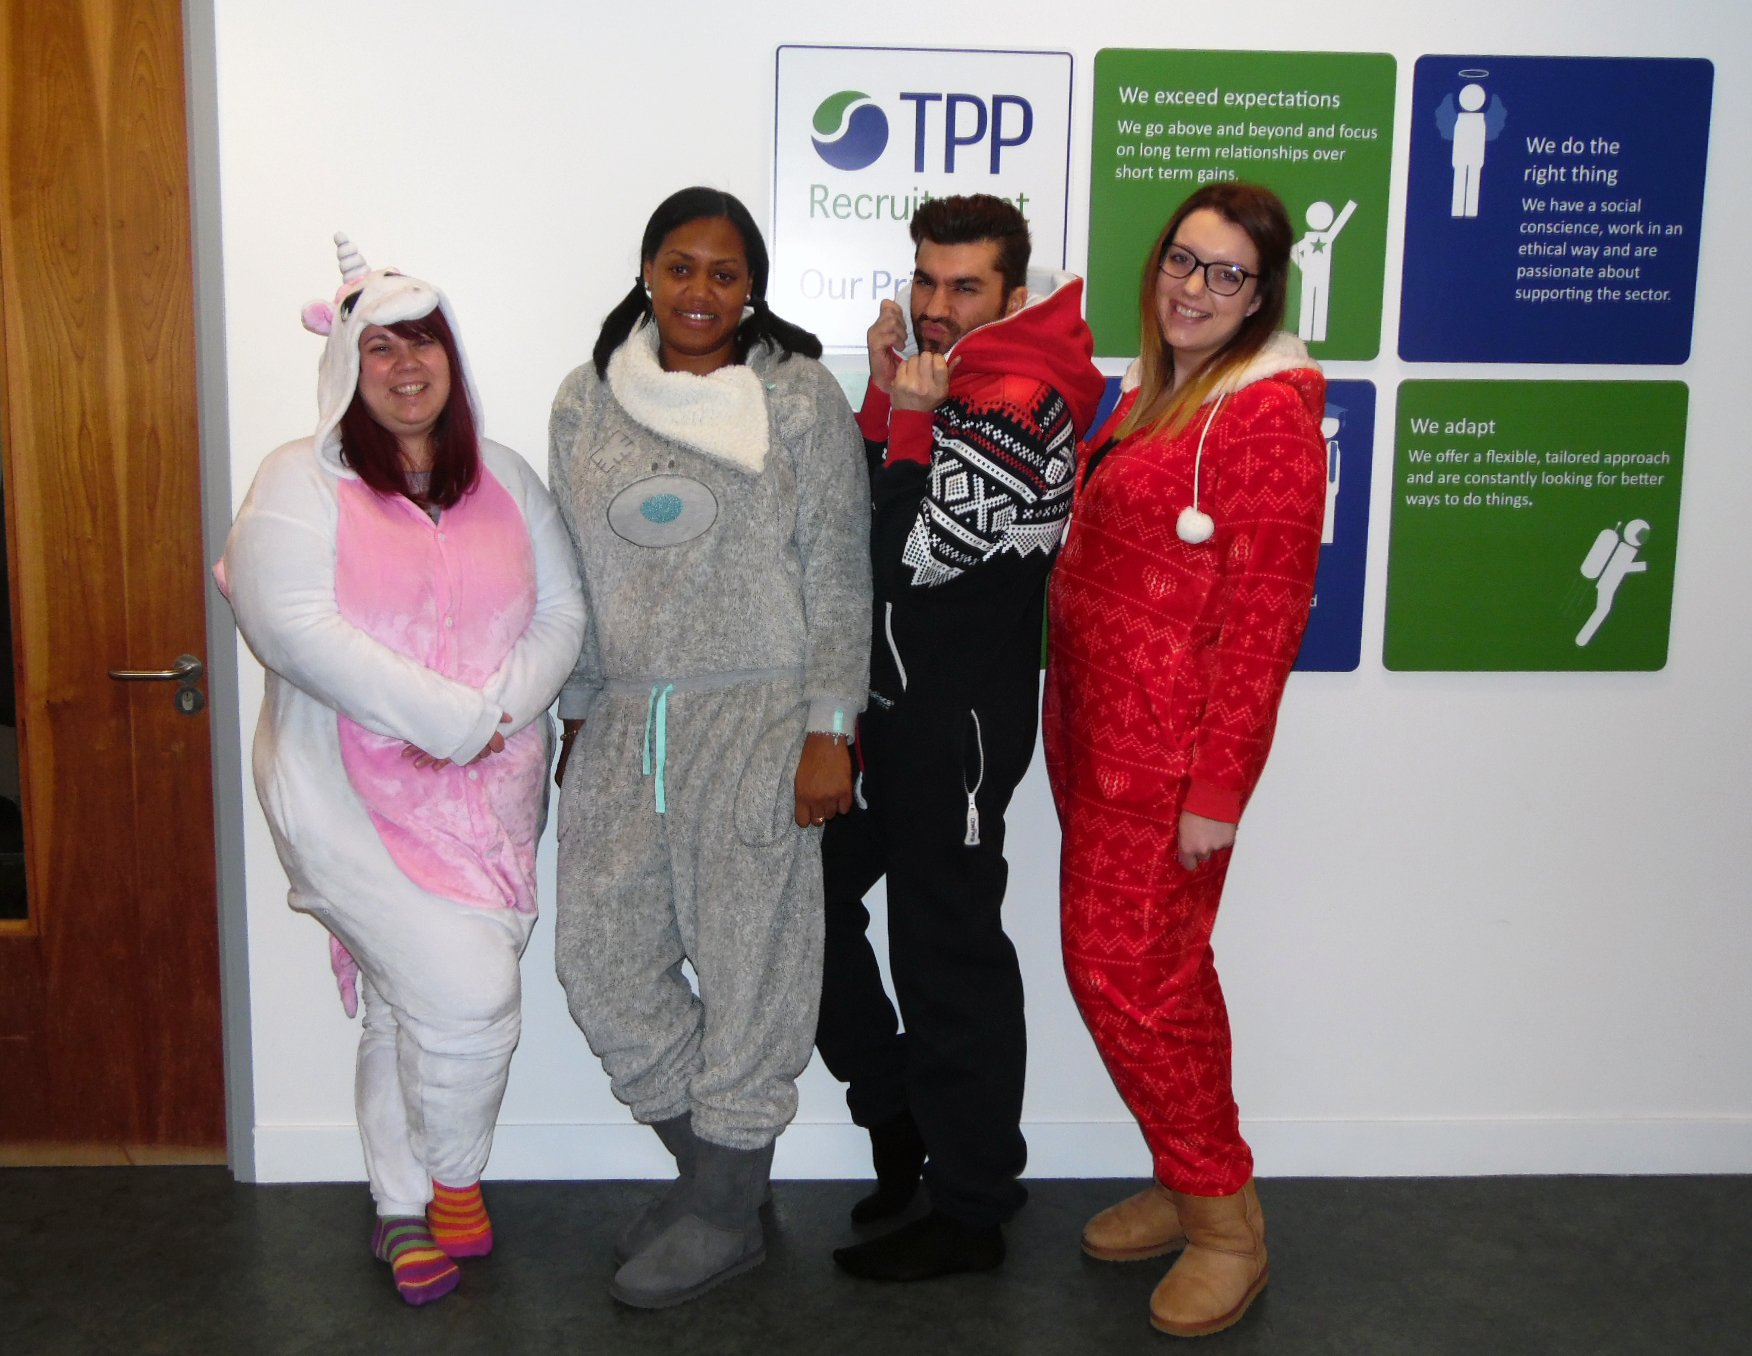 .@TPPRecruitment support staff taking #GivingTuesday dress-down to the max! https://t.co/5DhzARYouz